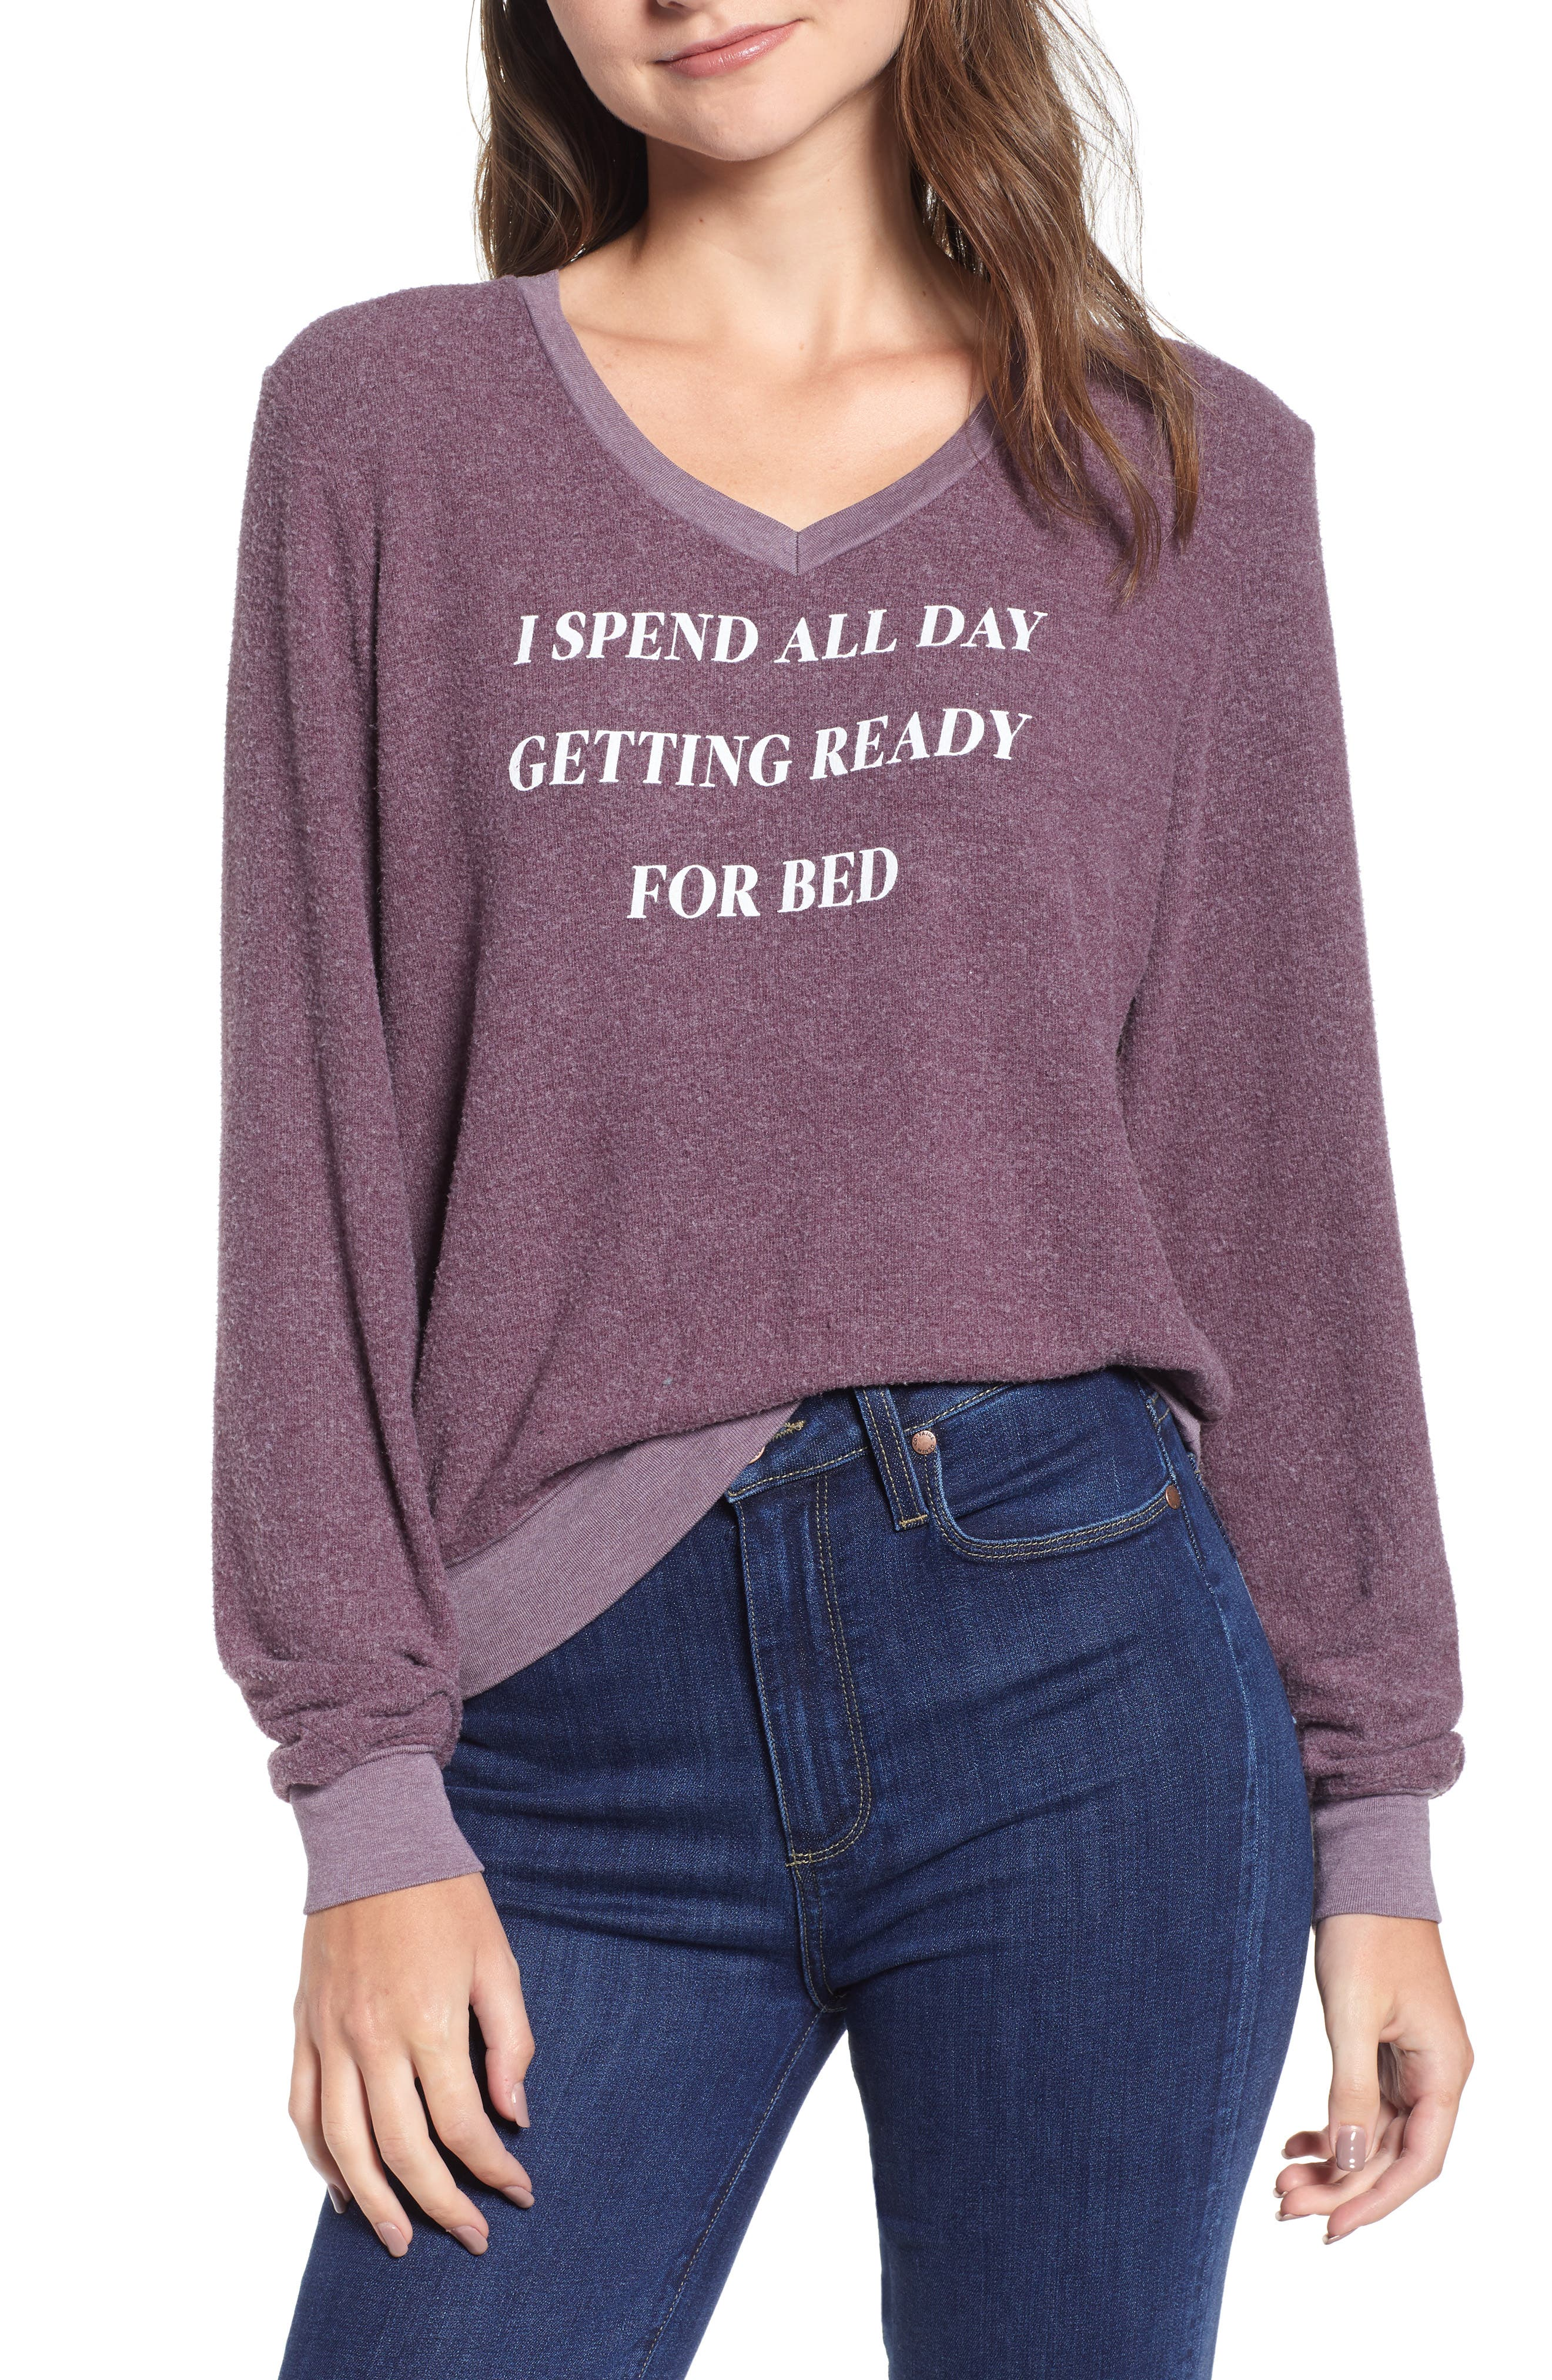 Ready For Bed Baggy Beach Jumper Sweatshirt,                             Main thumbnail 1, color,                             CRUSHED BERRY